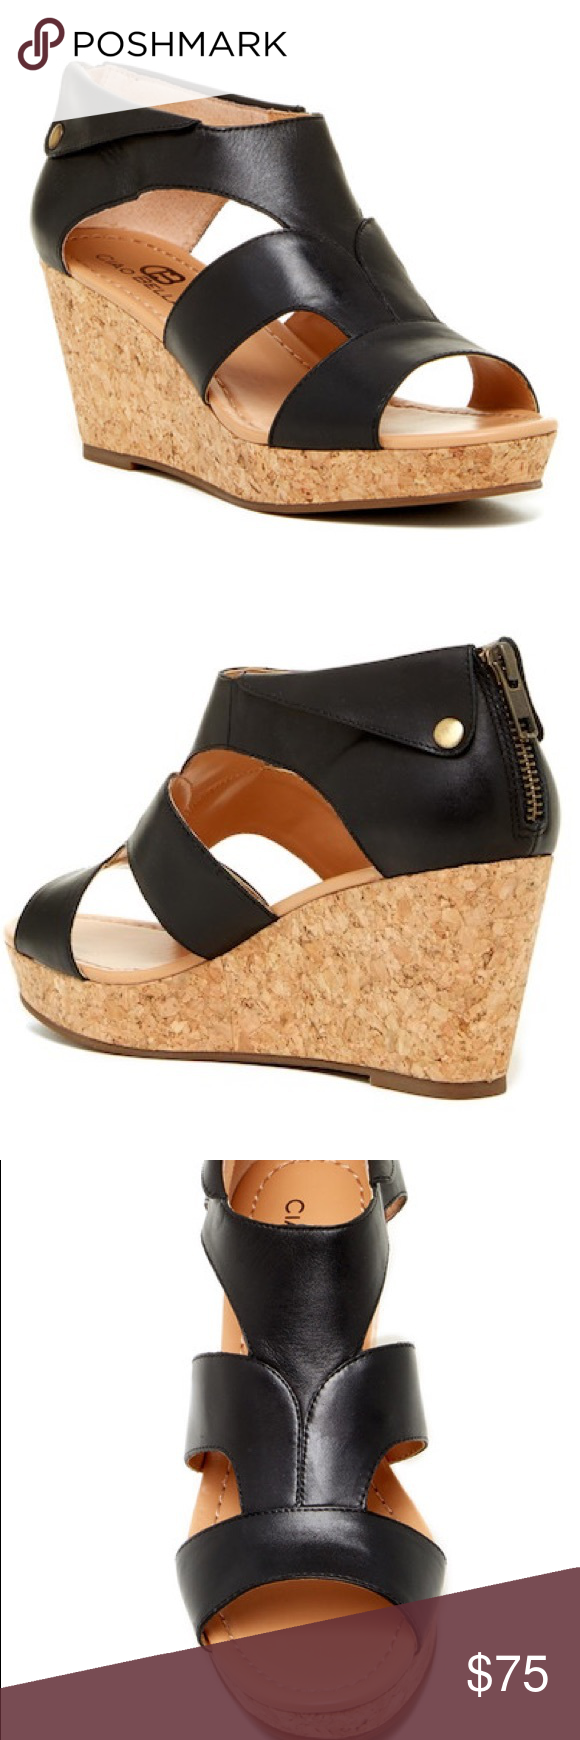 6c17f1a5a Ciao Bella Lucy Cork Wedge Sandal NIB - Open toe - Caged vamp - Back zip  closure - Cork wedge heel and platform - Approx. 3.25